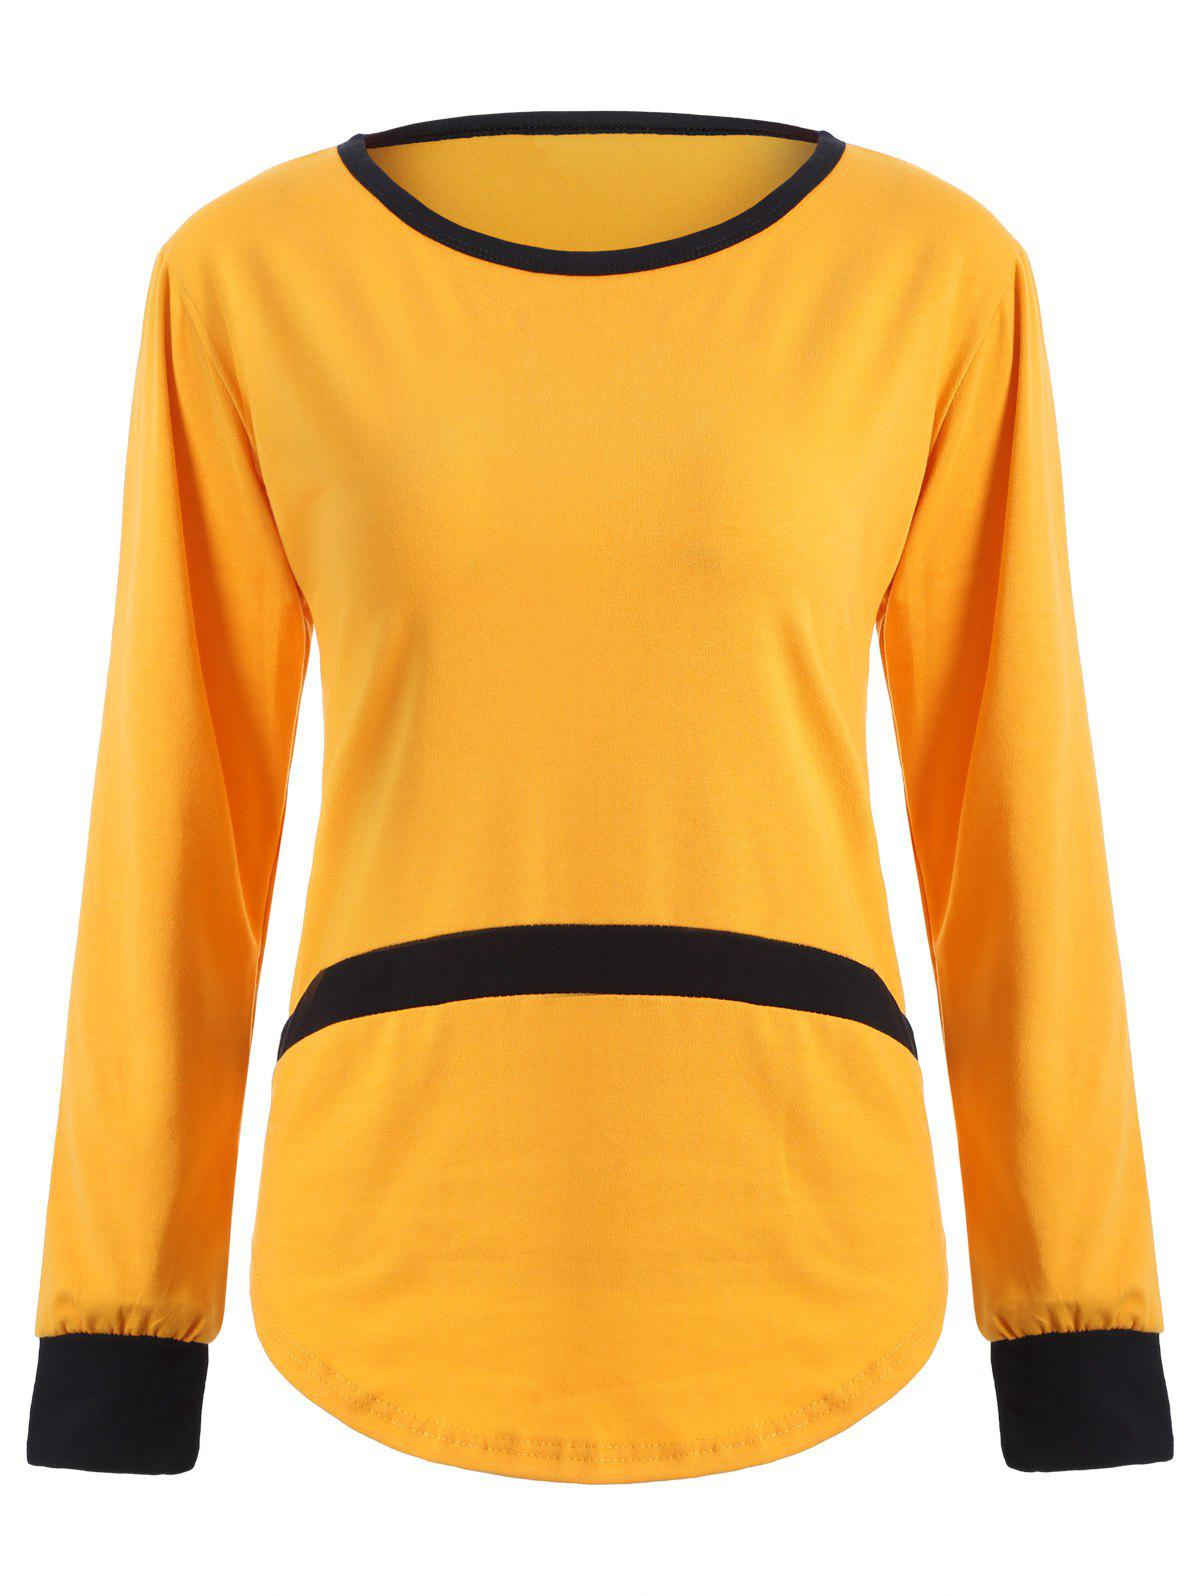 Scoop Neck Patchwork Contrast T-Shirt - YELLOW XL